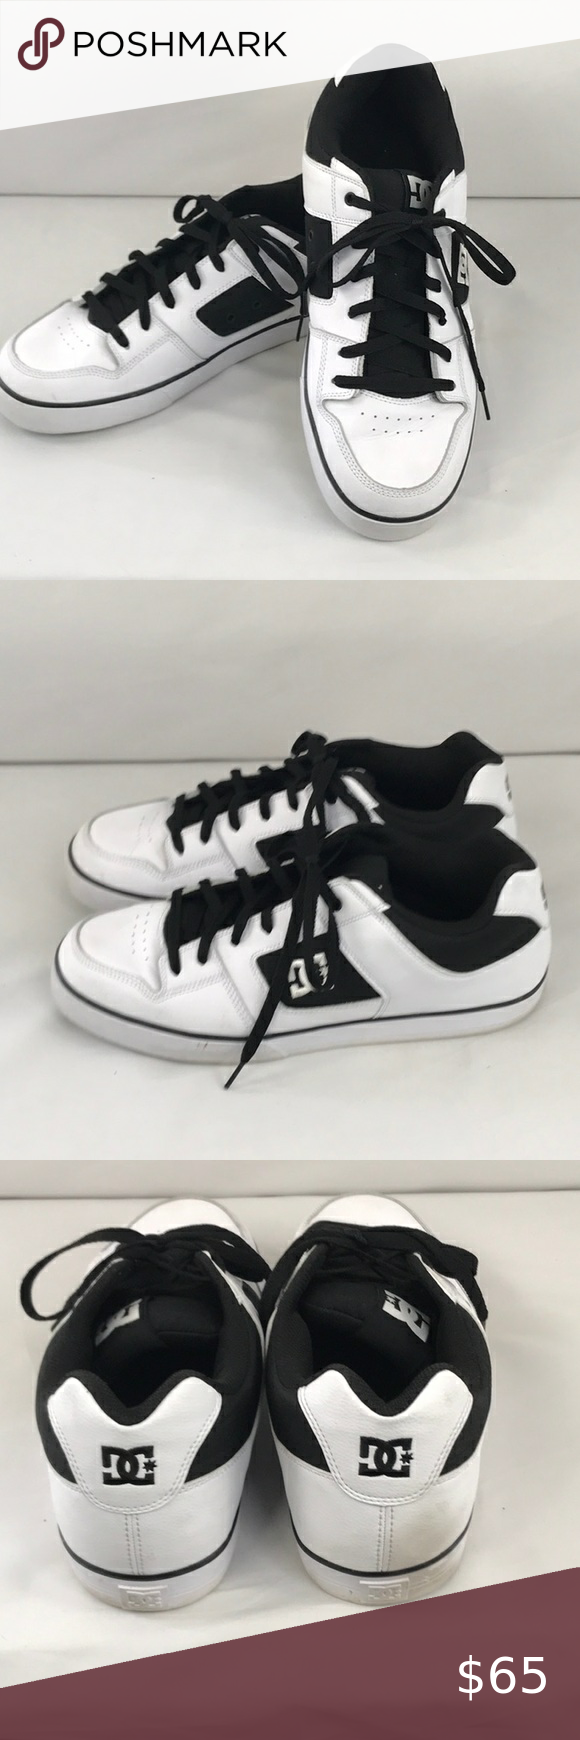 DC tennis skate shoe shoes size 14 in